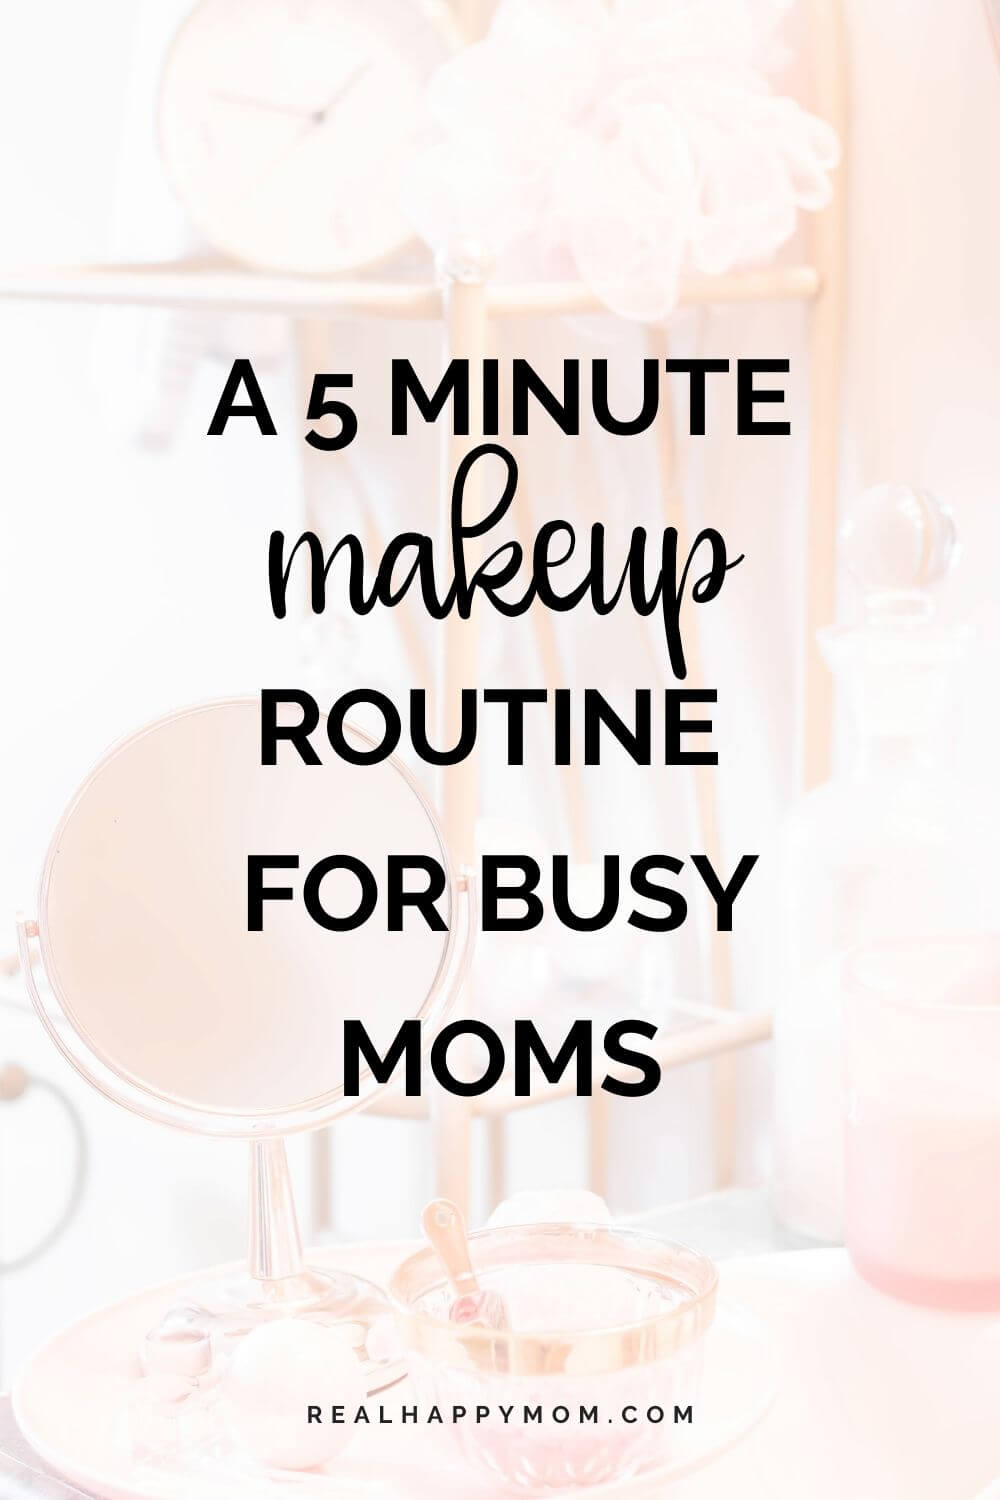 A 5 Minute Makeup Routine for Busy Moms